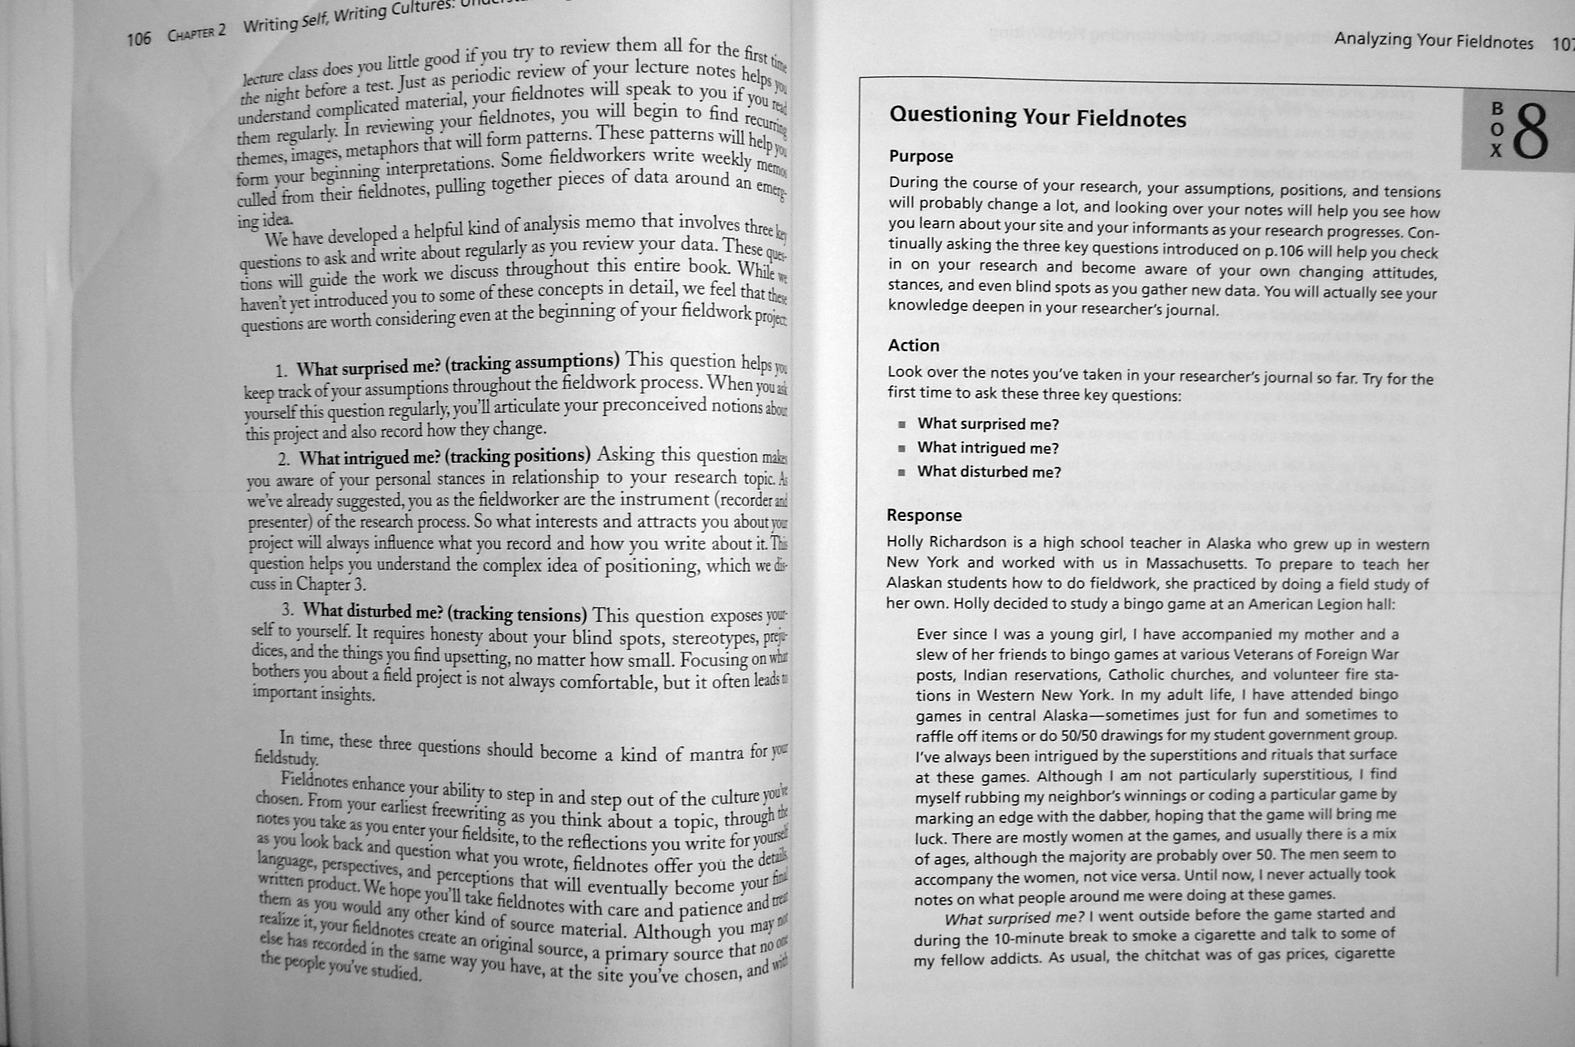 ethnographic essays Ethnography is the systematic study of people and cultures it is designed to explore cultural phenomena where the researcher observes society from the point of view of the subject of the study an ethnography is a means to represent graphically and in writing the culture of a group the word can thus be said to have a.